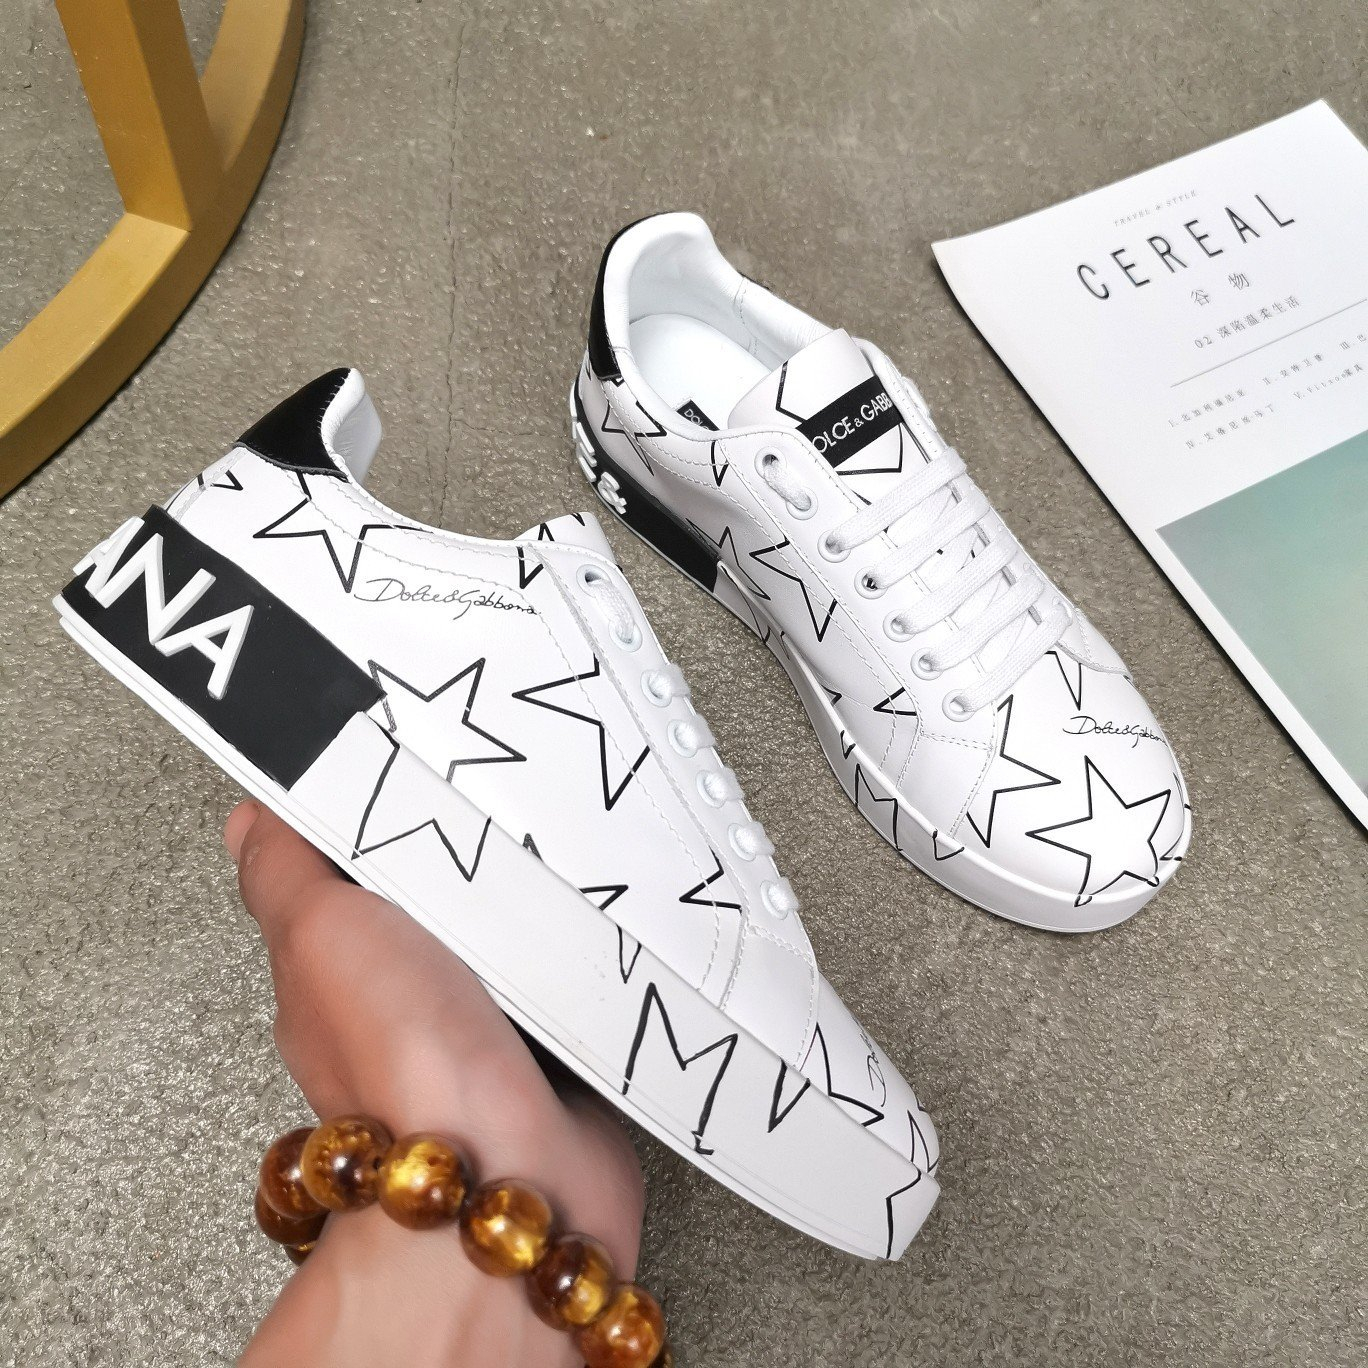 Image of D&G DOLCE&GABBANA Woman's Men's 2020 New Fashion Casual Shoes Sneaker Sport Running Shoes